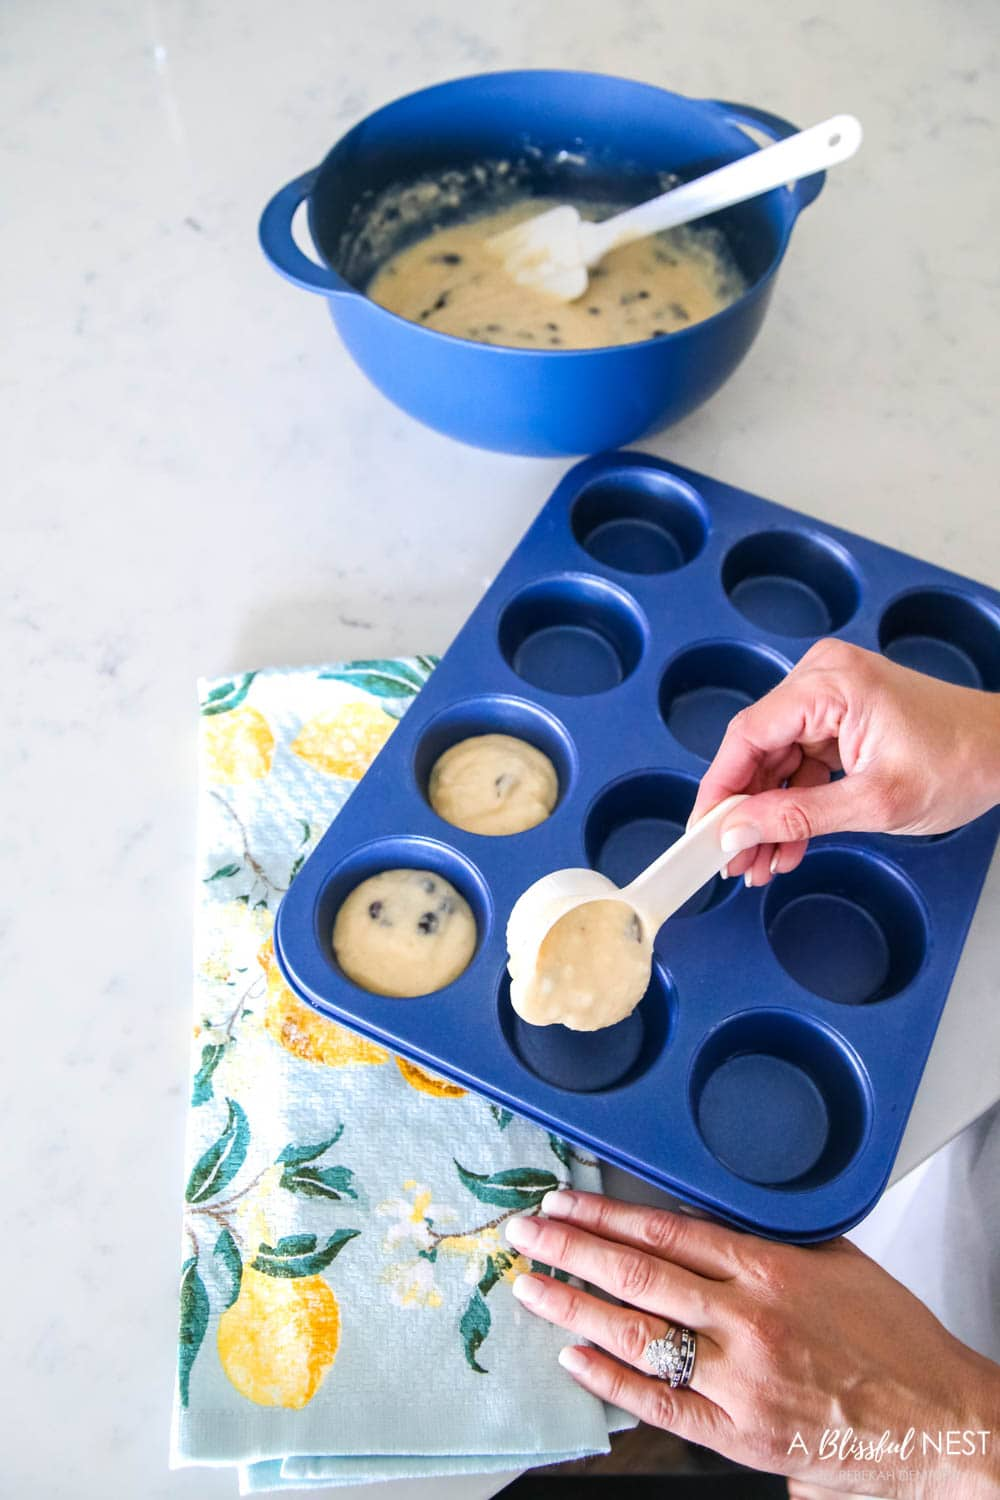 Love these affordable kitchen items for baking and cooking in shades of blue with citrus accents from Walmart. #ABlissfulNest #WalmartHome #sponsored #kitchen #baking